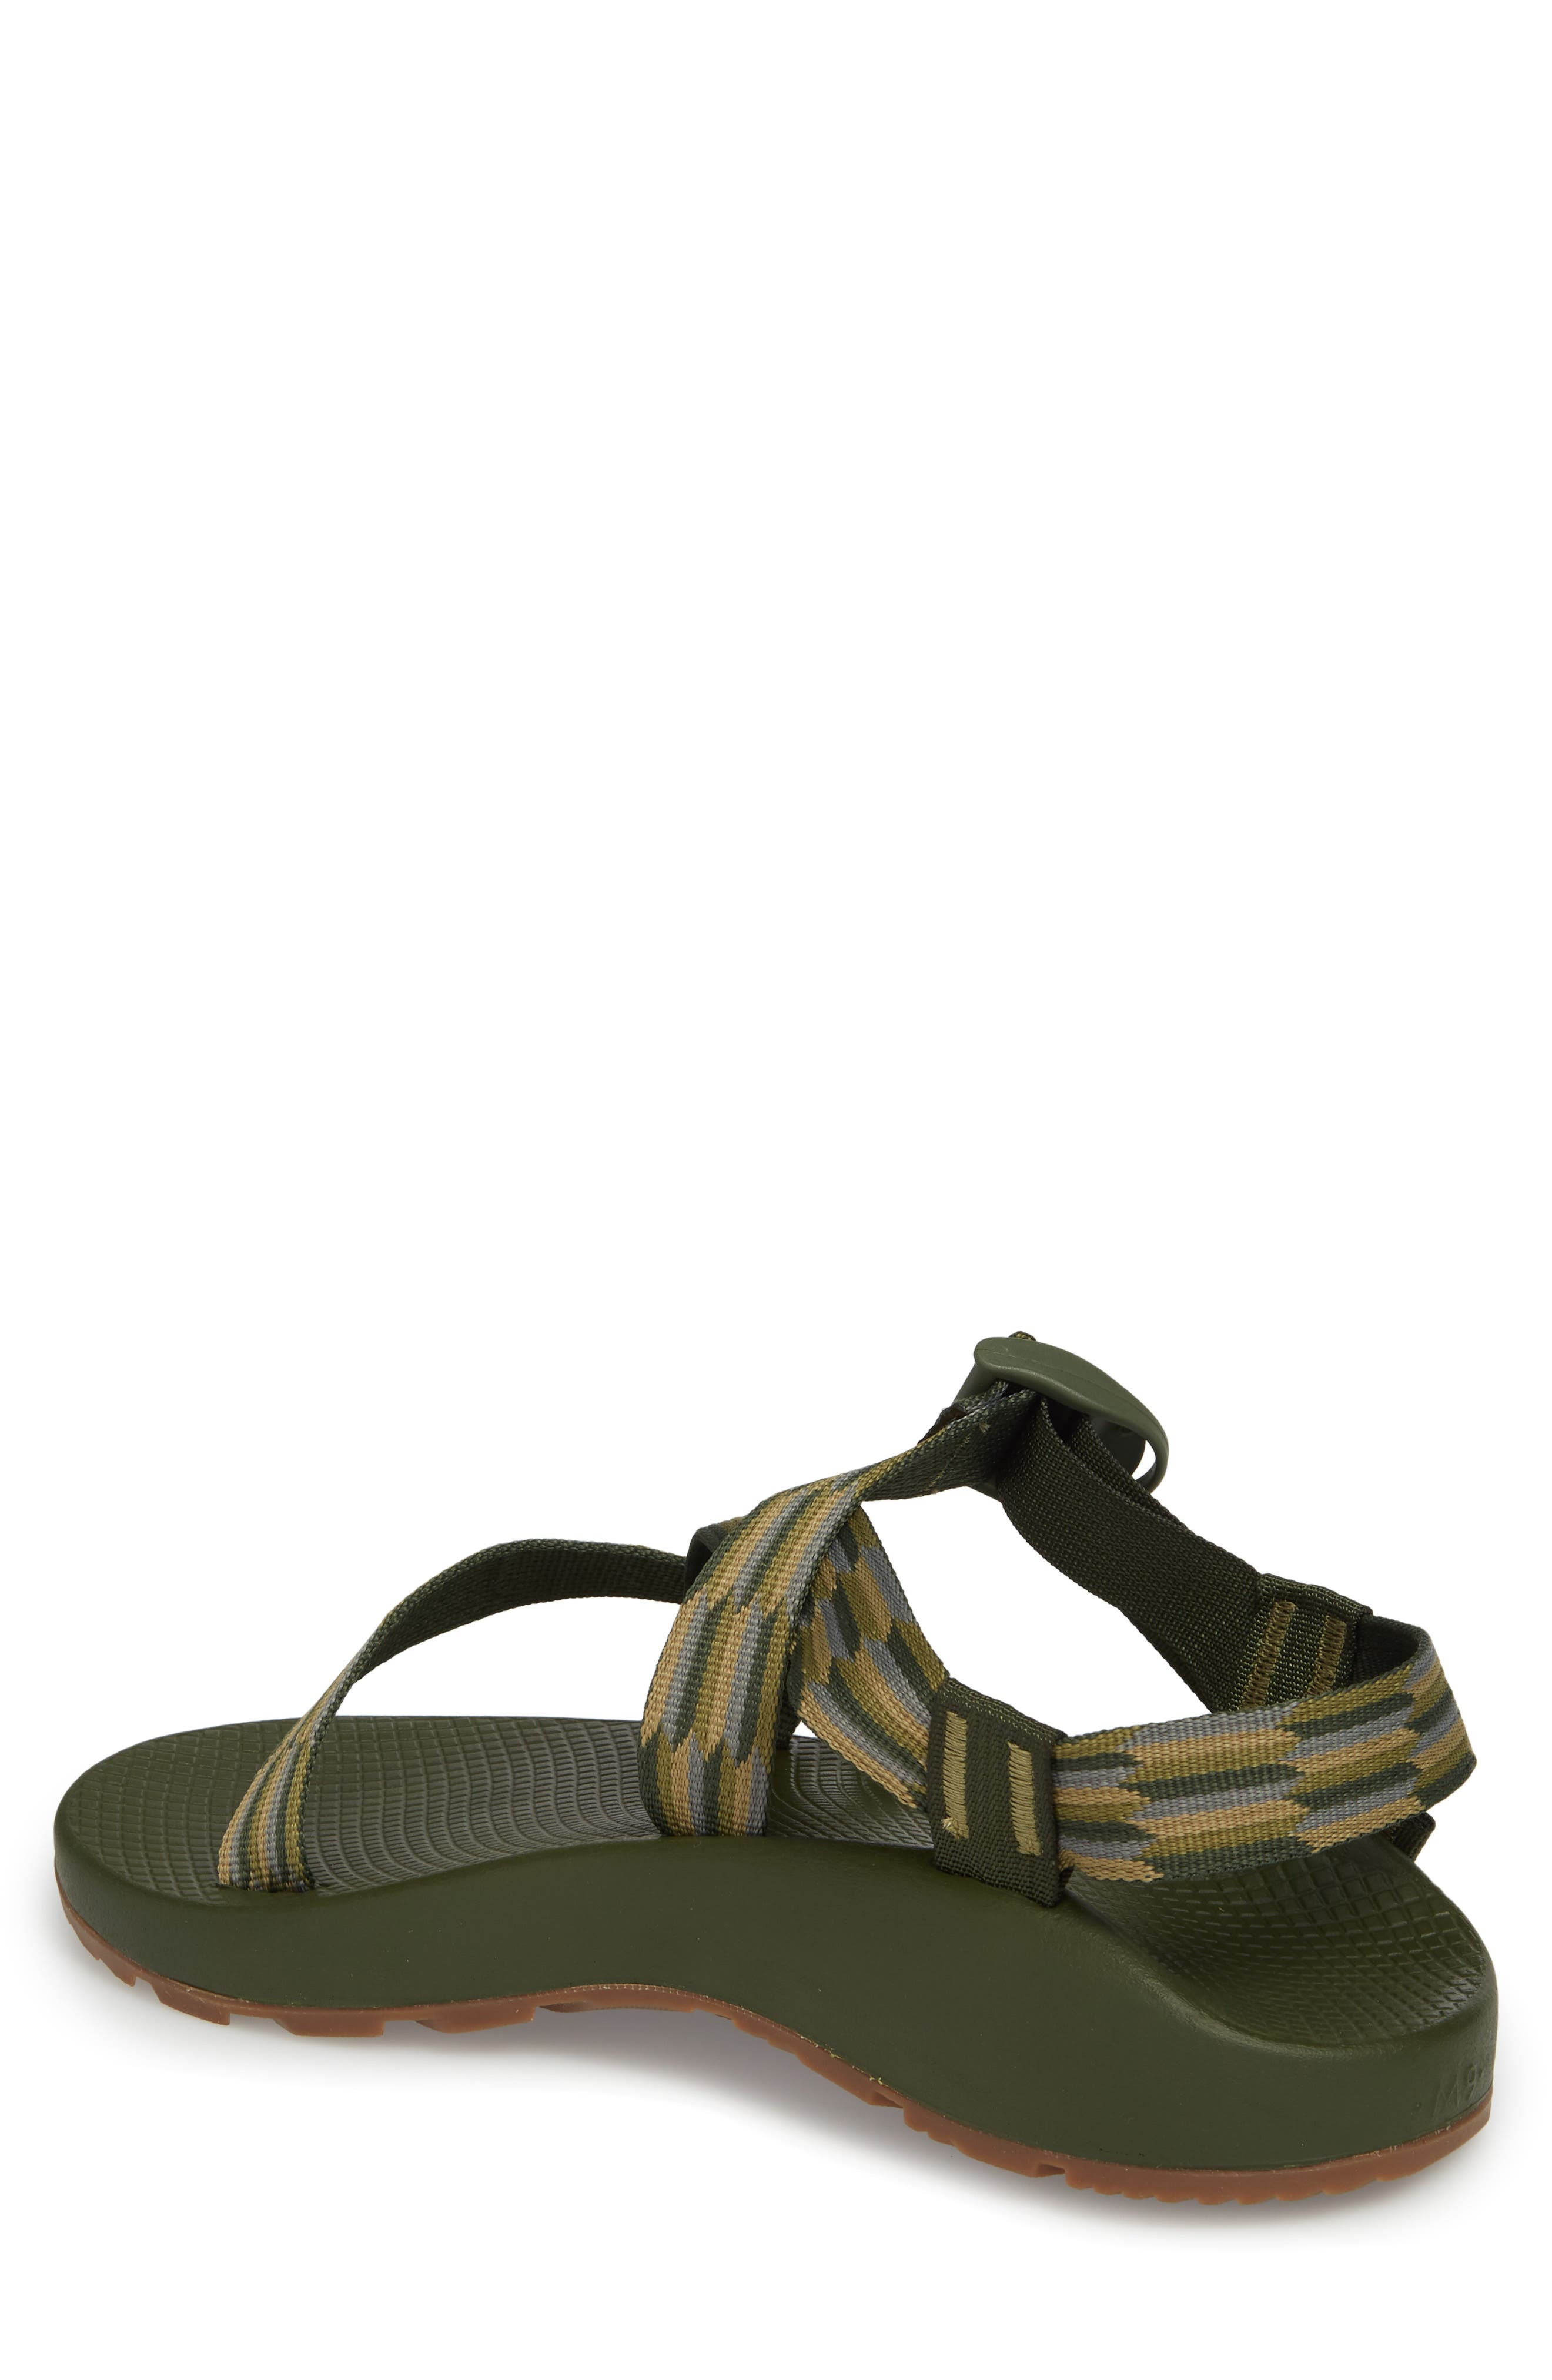 Alternate Image 2  - Chaco Z/1 Classic Sport Sandal (Men)